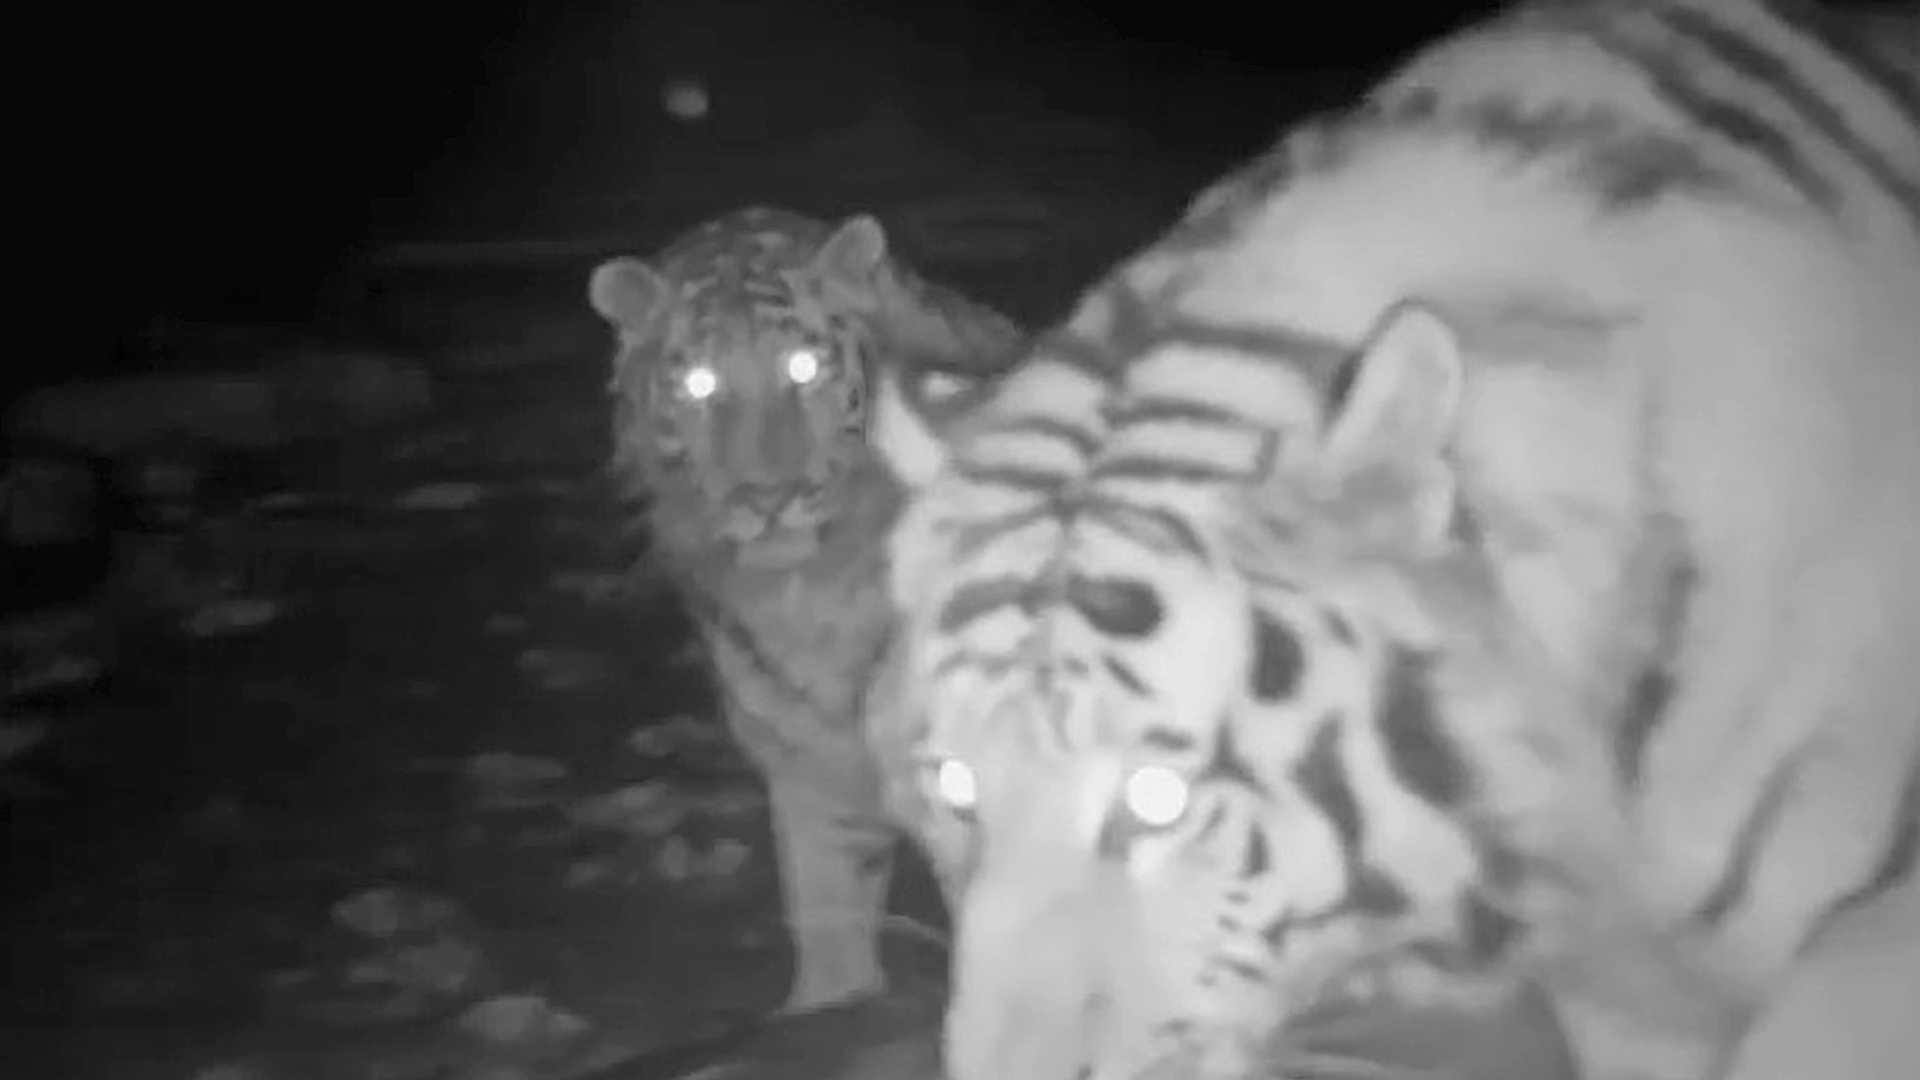 VIDEO: Close-Up Footage Shows Endangered Siberian Tigress And Cub Discovering Hidden Camera Trap